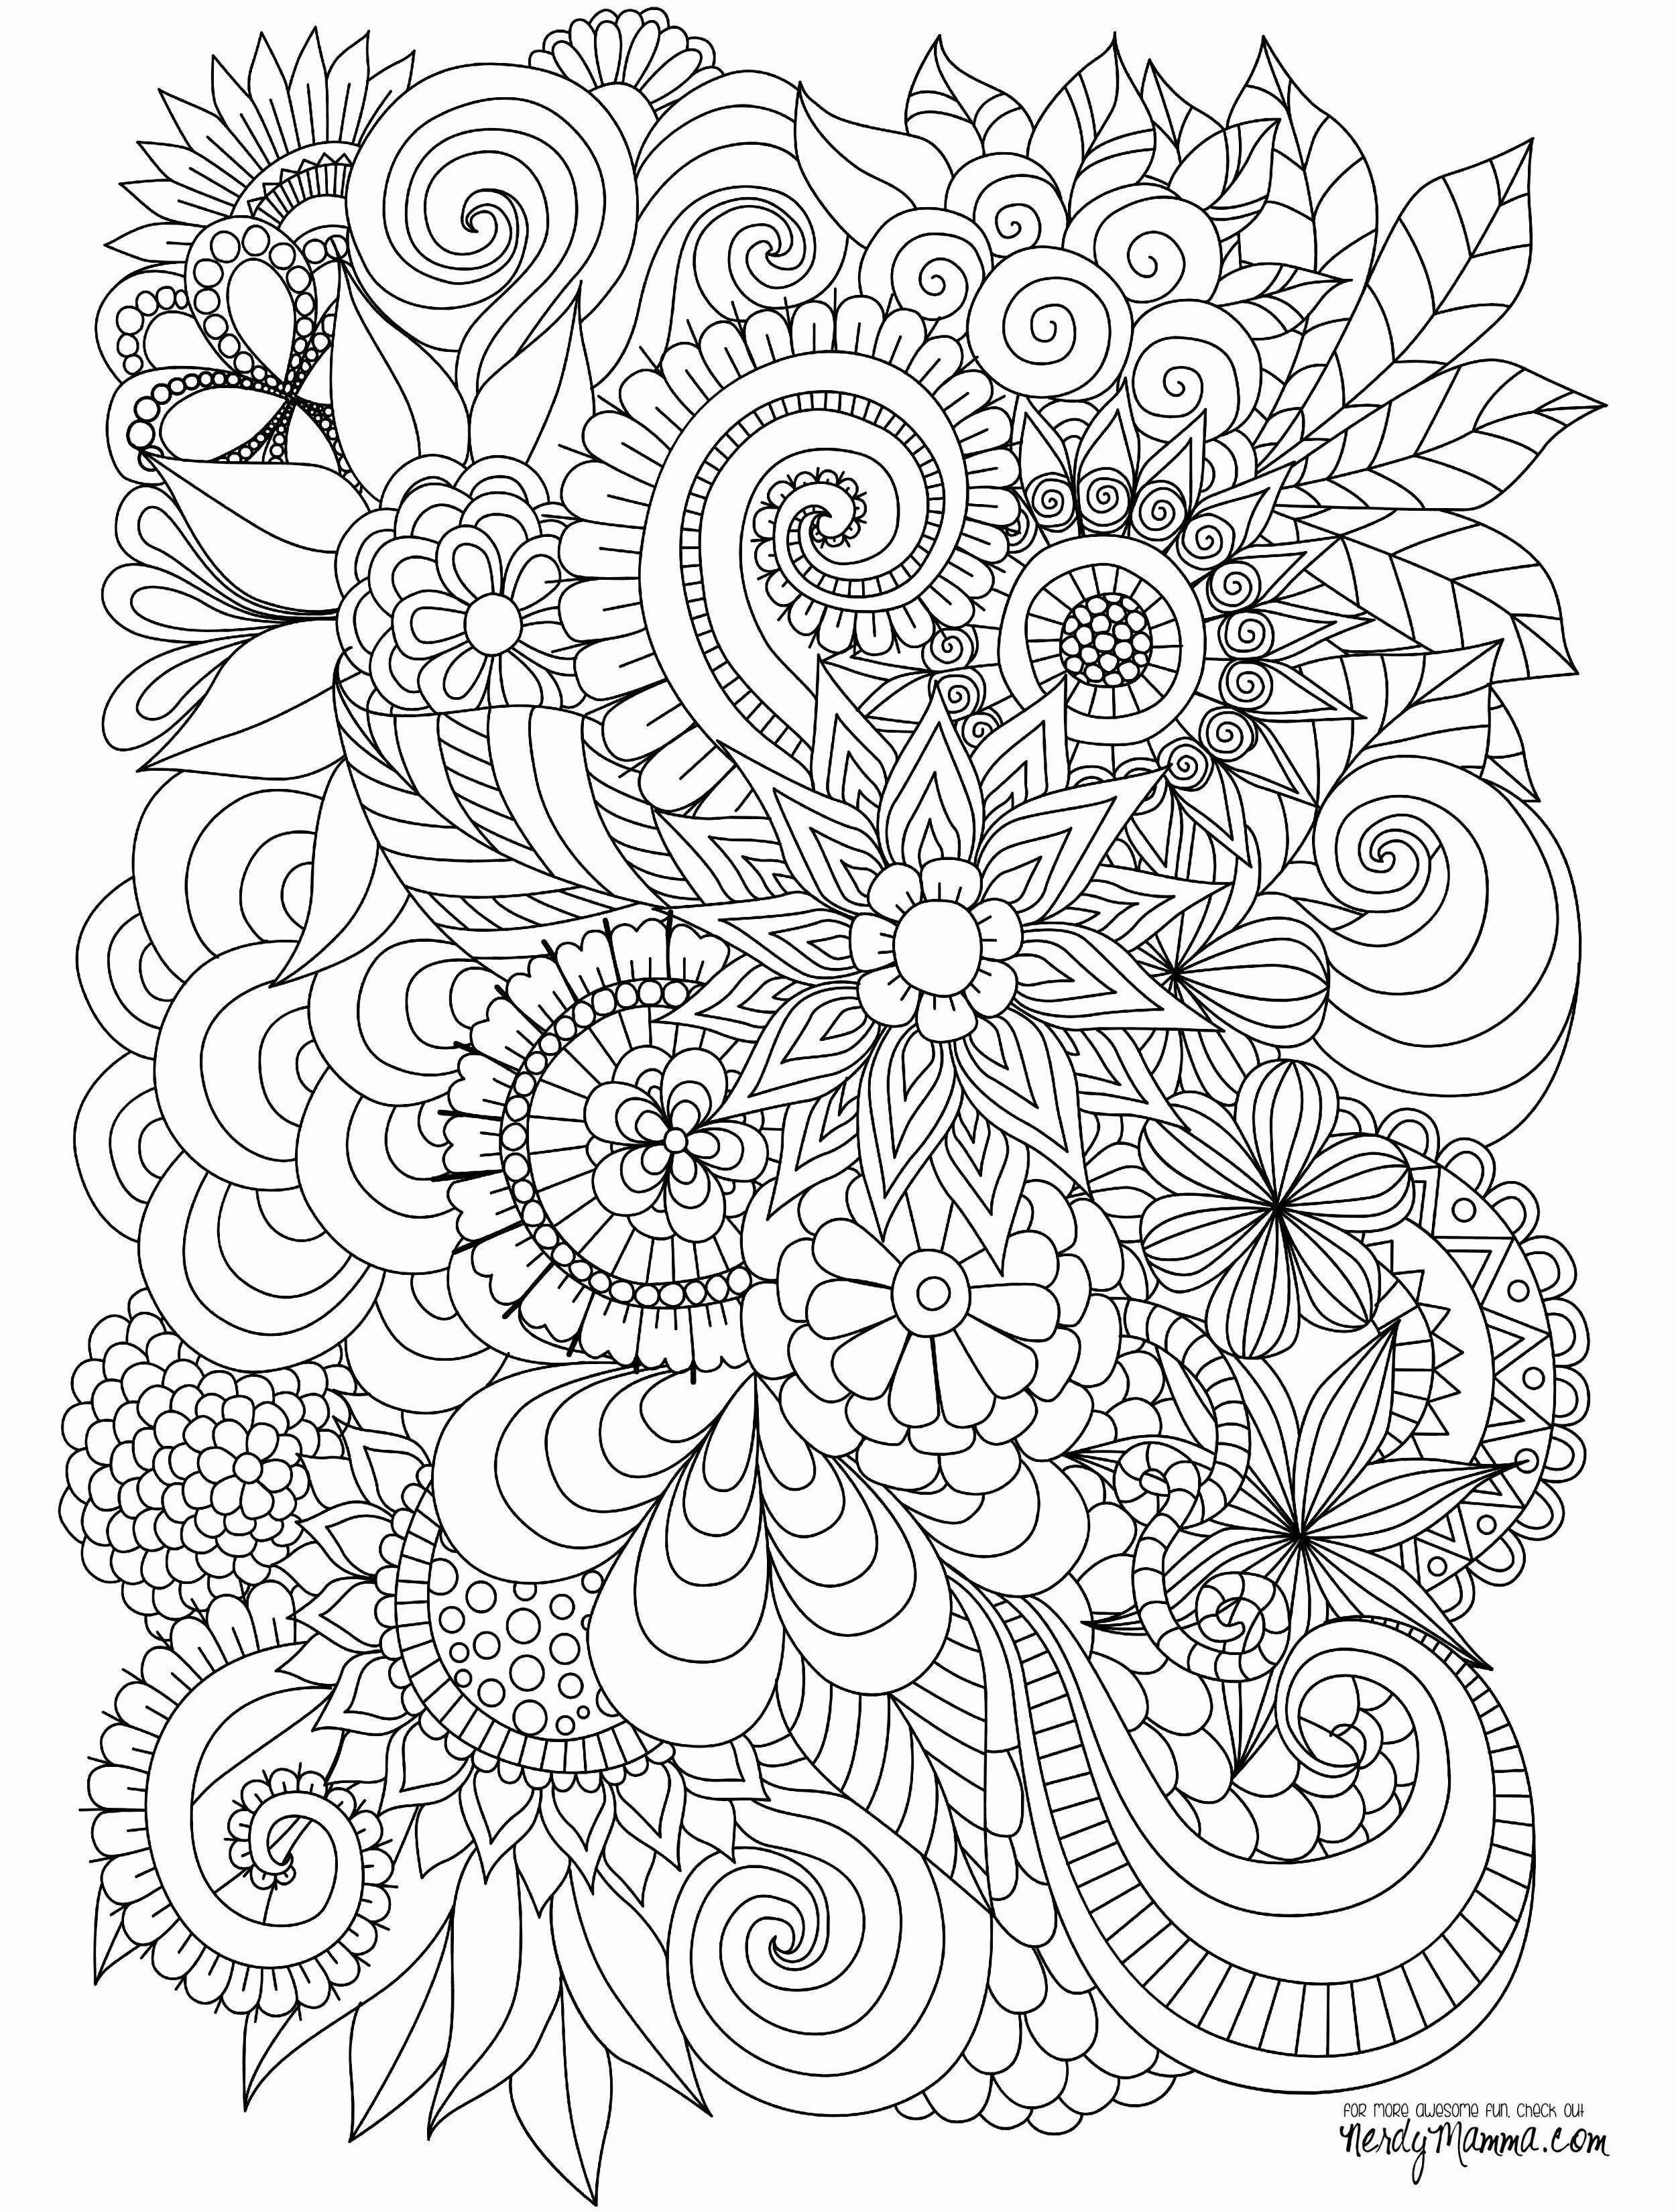 Religious Coloring Pages For Kids Coloring Books 33 Staggering Religious Coloring Pages Image